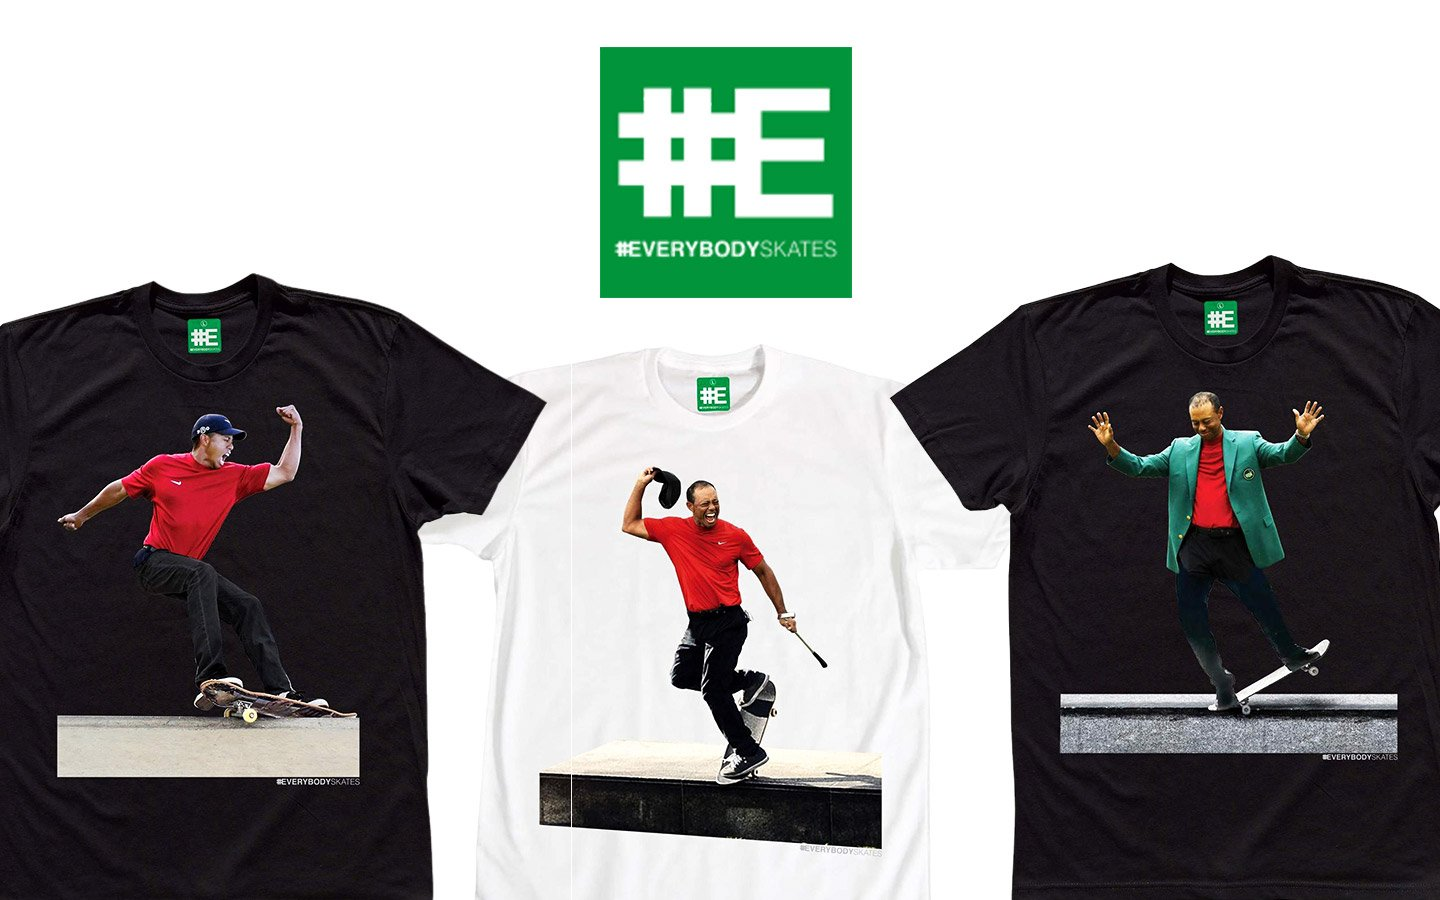 everybodyskates tiger woods skateboarding tees and men's t-shirts in black and white on thedrop